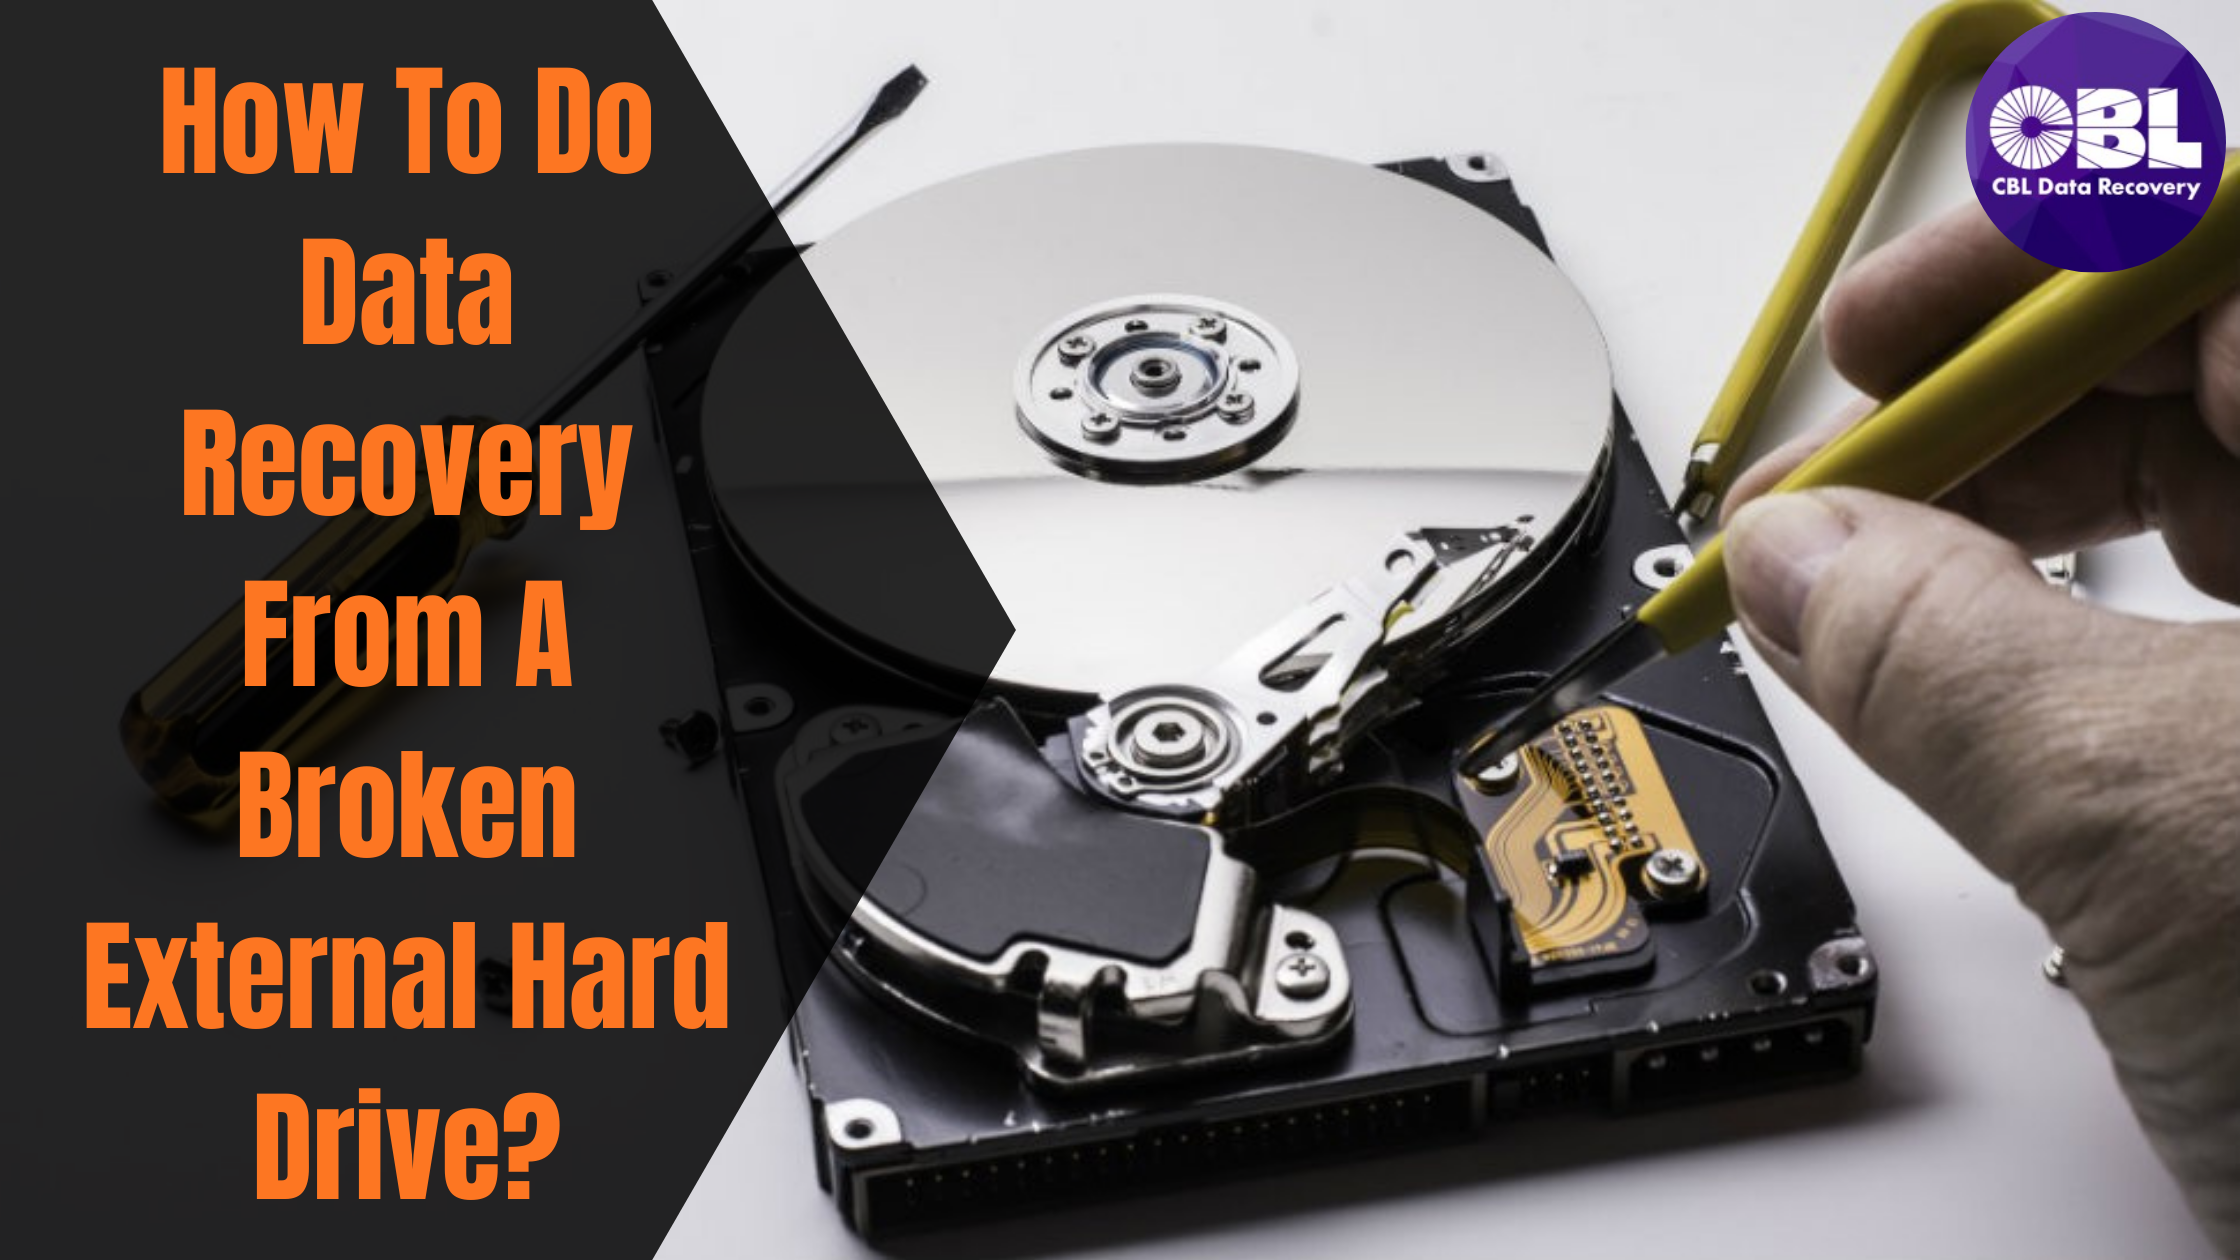 How To Do Data Recovery From A Broken External Hard Drive?